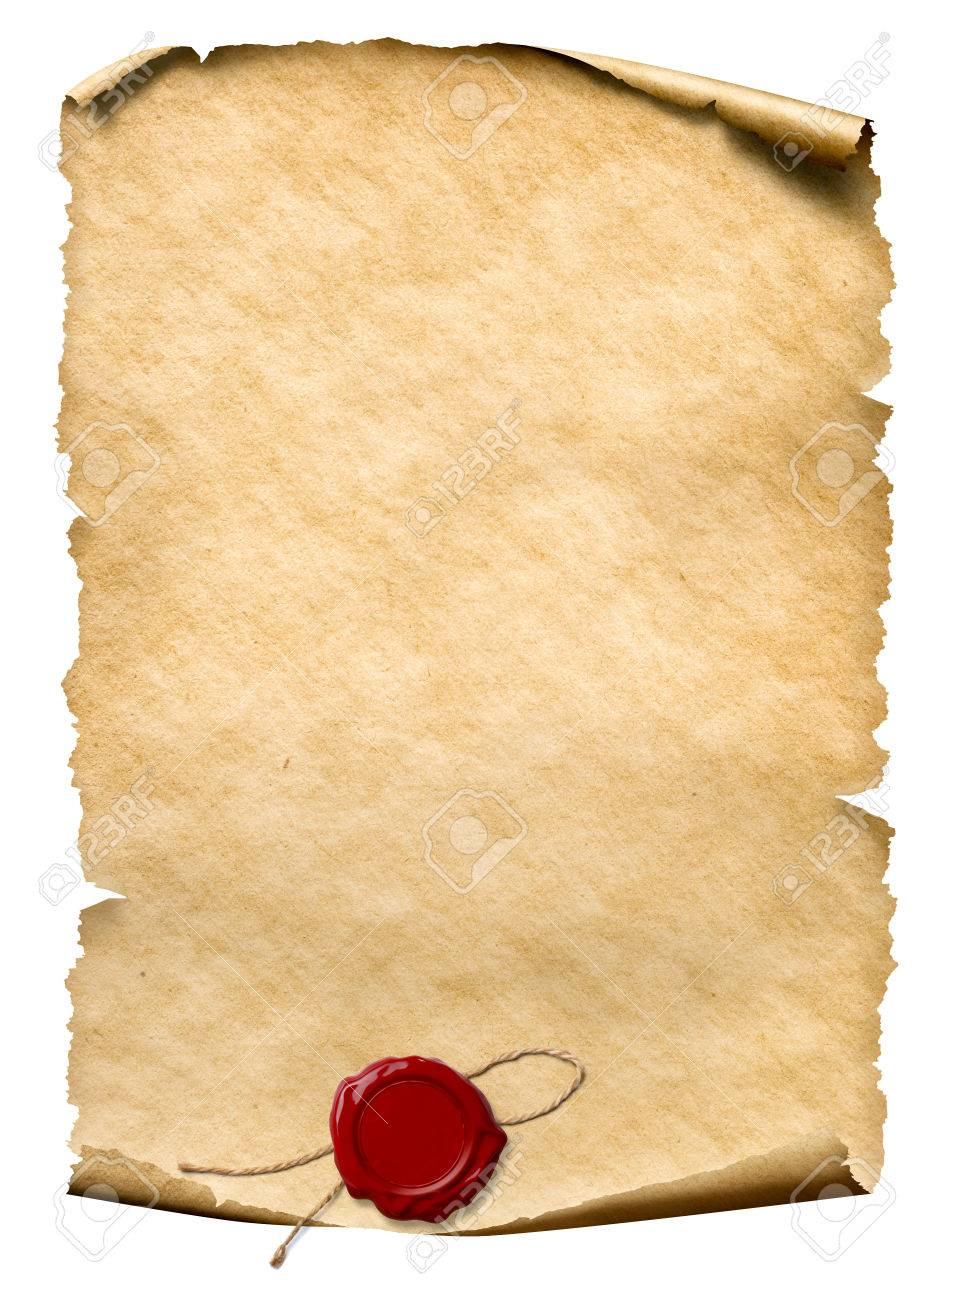 parchment with wax seal isolated on white - 75758043